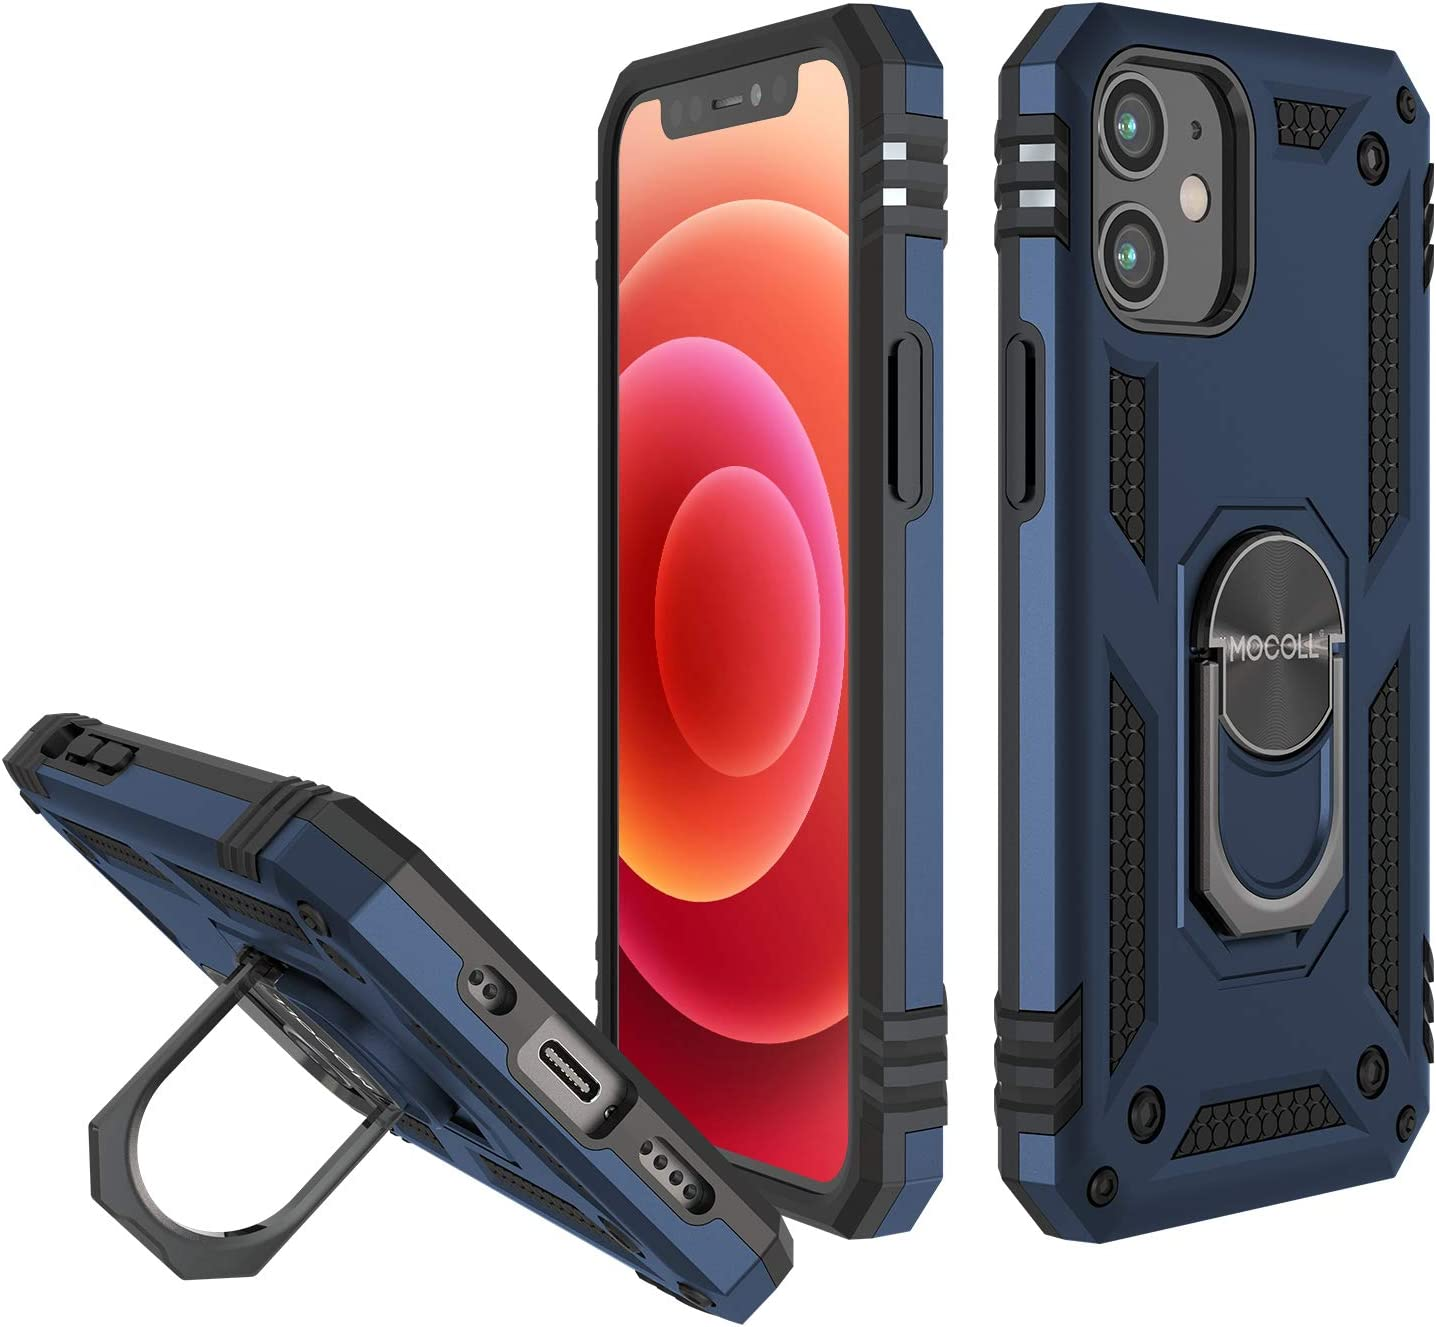 MOCOLL Case for iPhone 12 Pro Max Military Grade Drop Tested Protective Cover Case Protector Full-Body Holster Case with Kickstand Blue